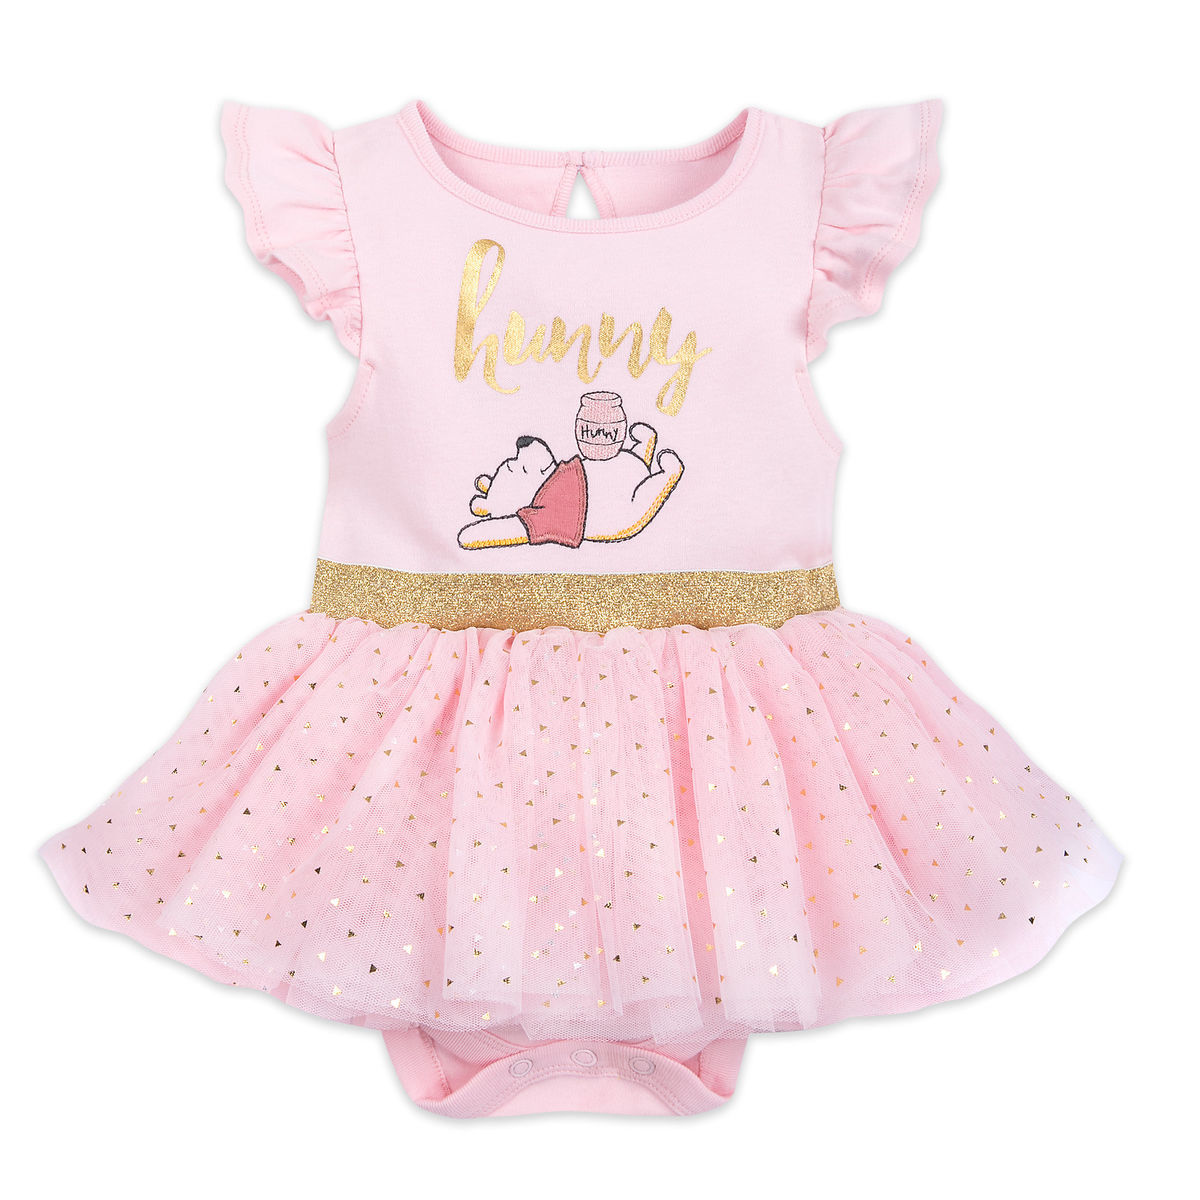 Product Image of Winnie the Pooh Tutu Bodysuit for Baby # 1